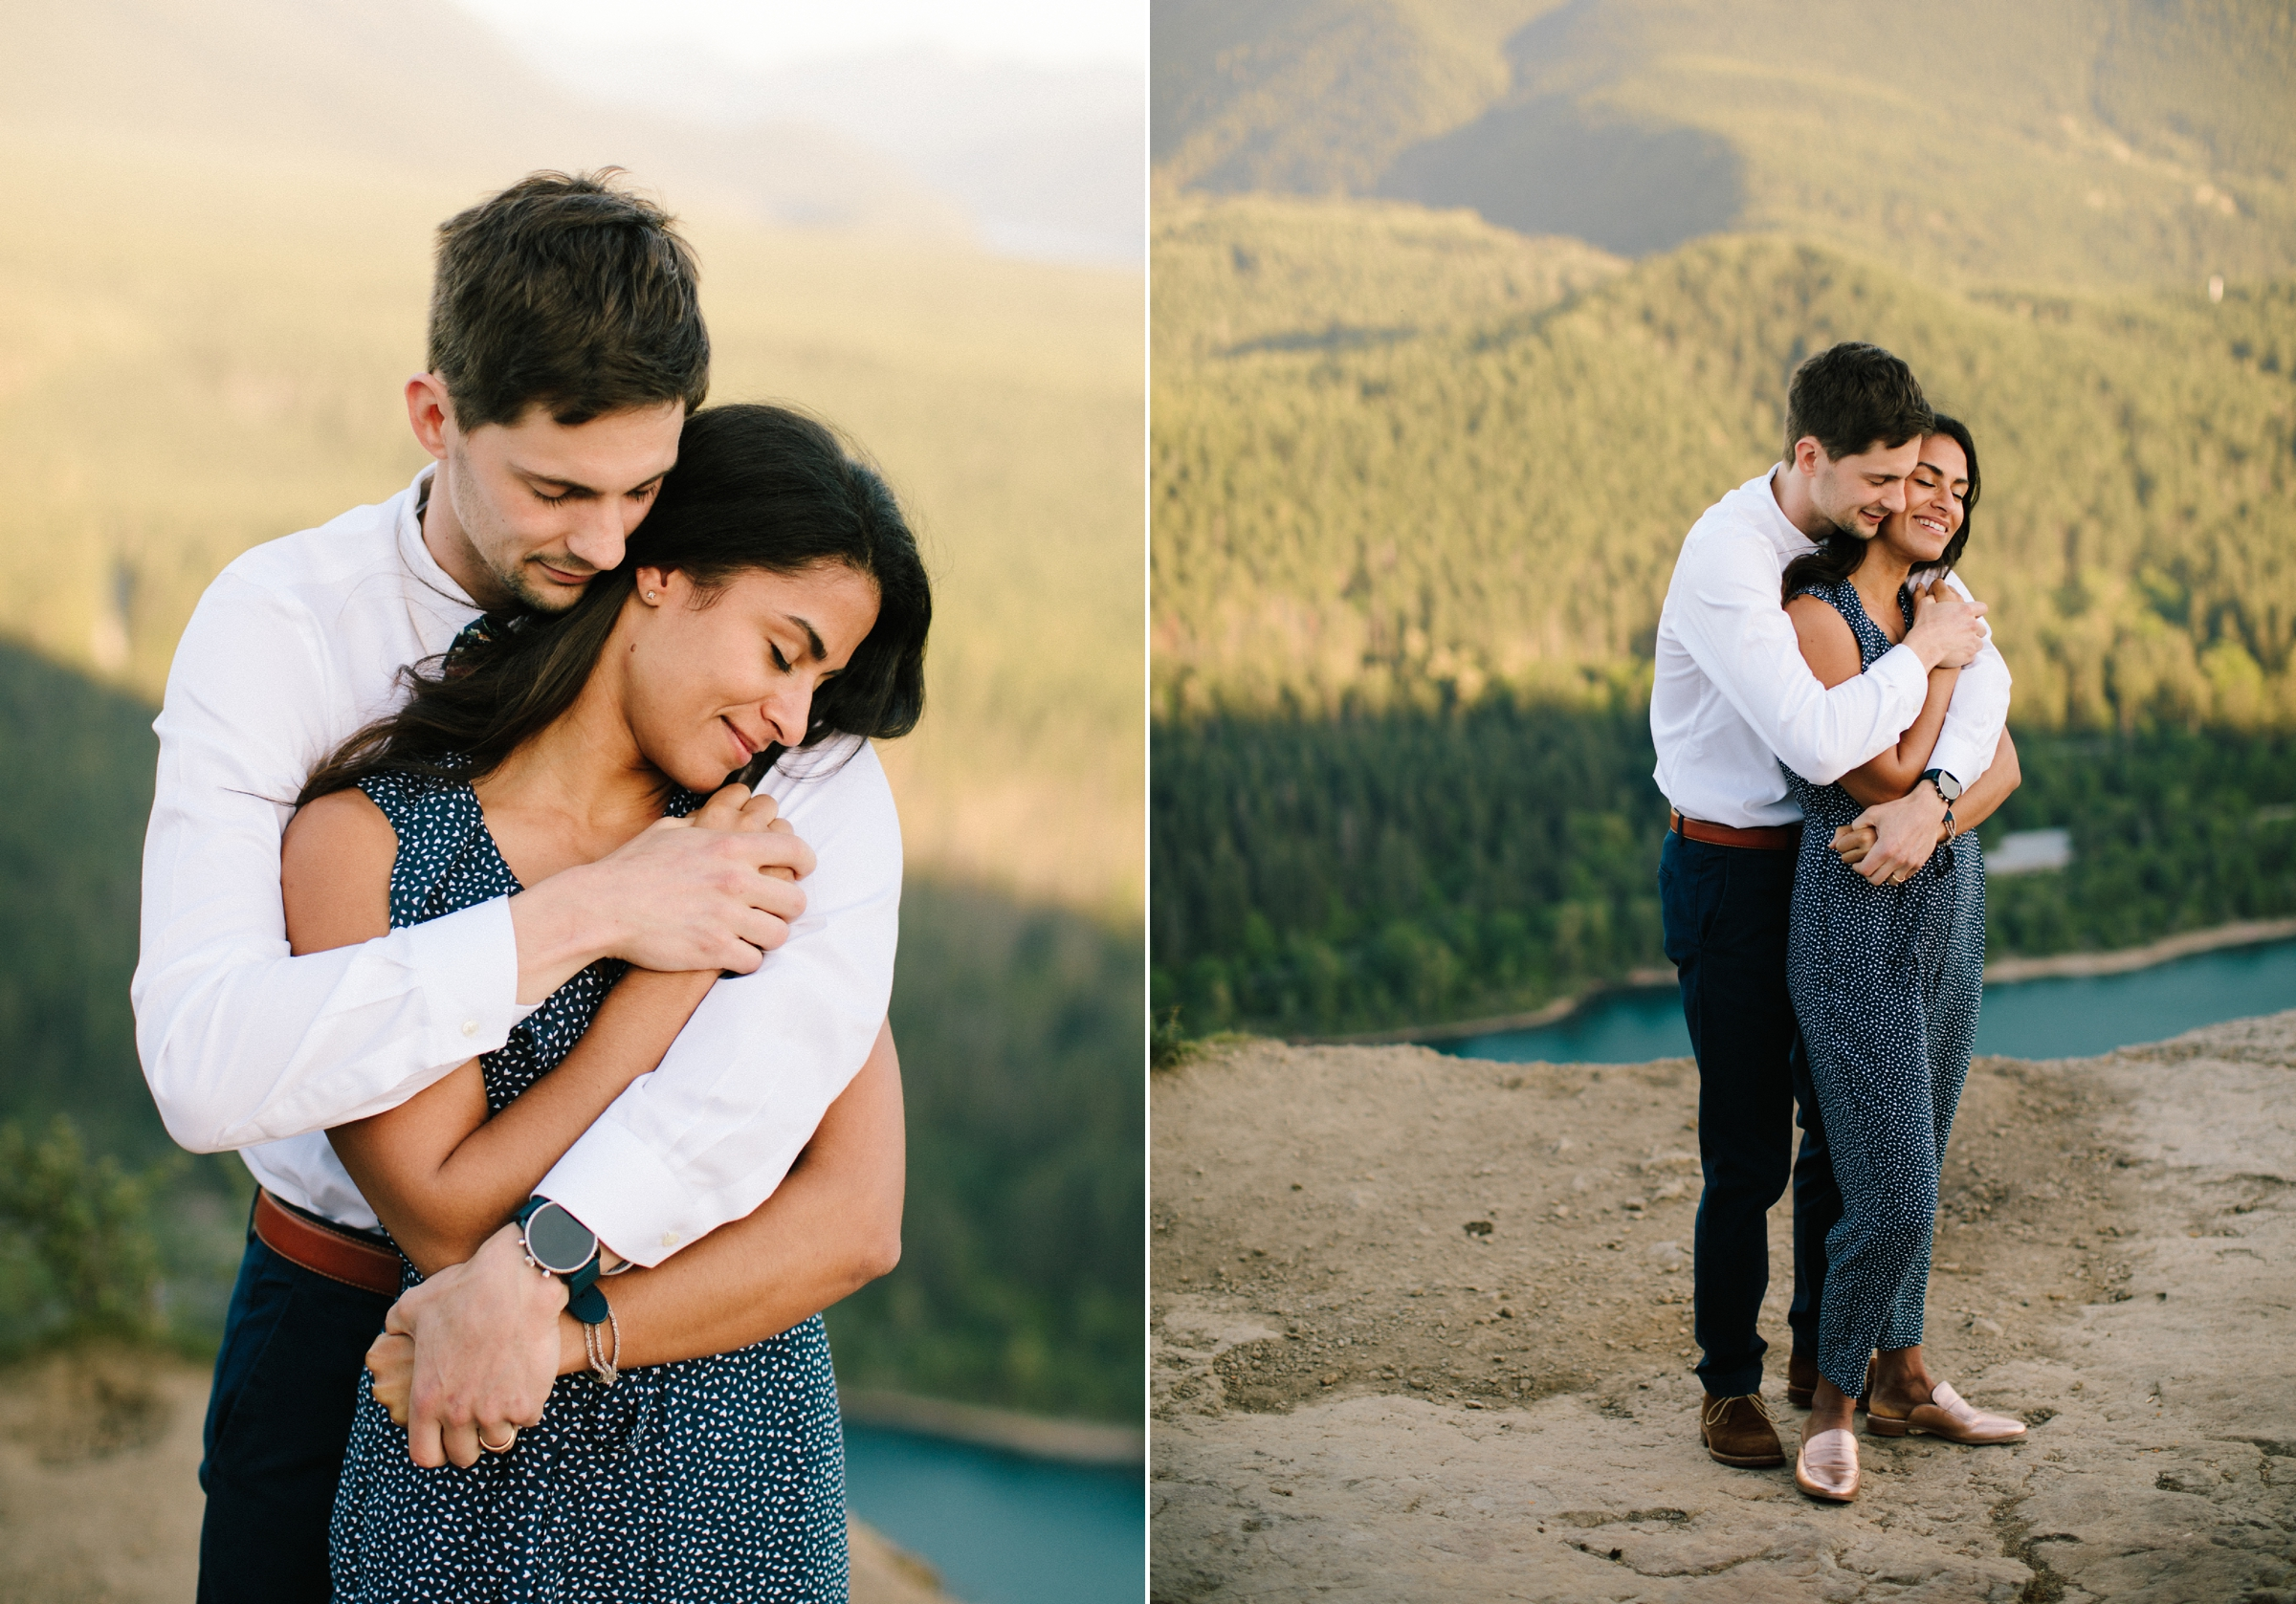 adventure-mountain-top-elopement-photographer-pnw-seattle-washington-wedding-engagement-hike-photography-catie-bergman_0007.jpg